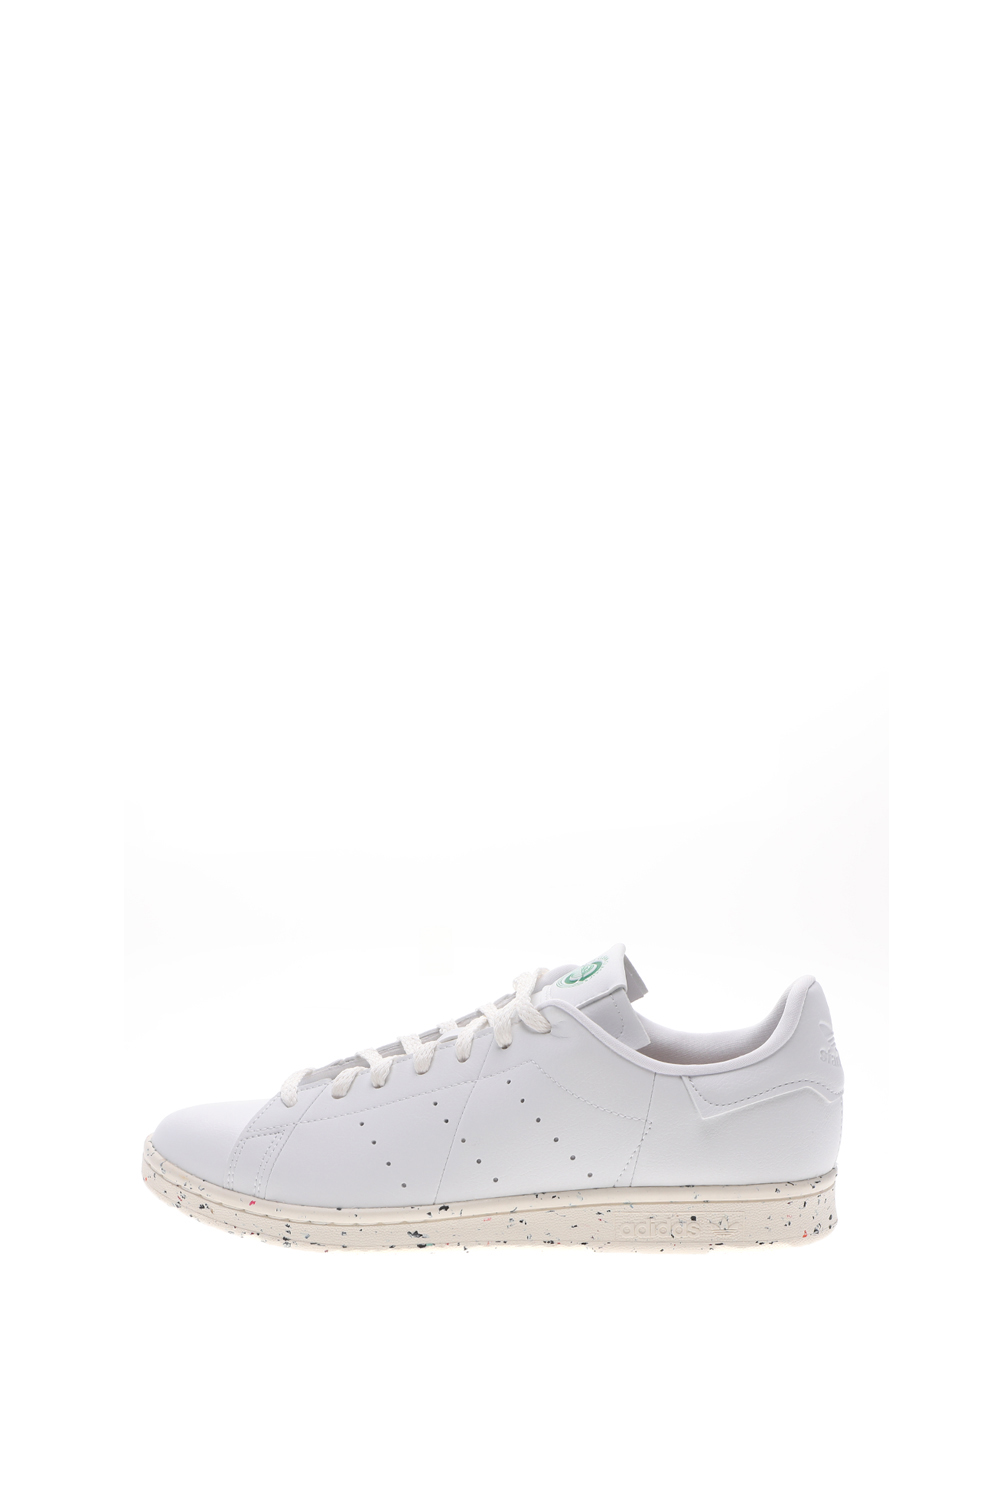 adidas Originals – Ανδρικά παπούτσια adidas Originals FV0534 STAN SMITH λευκά